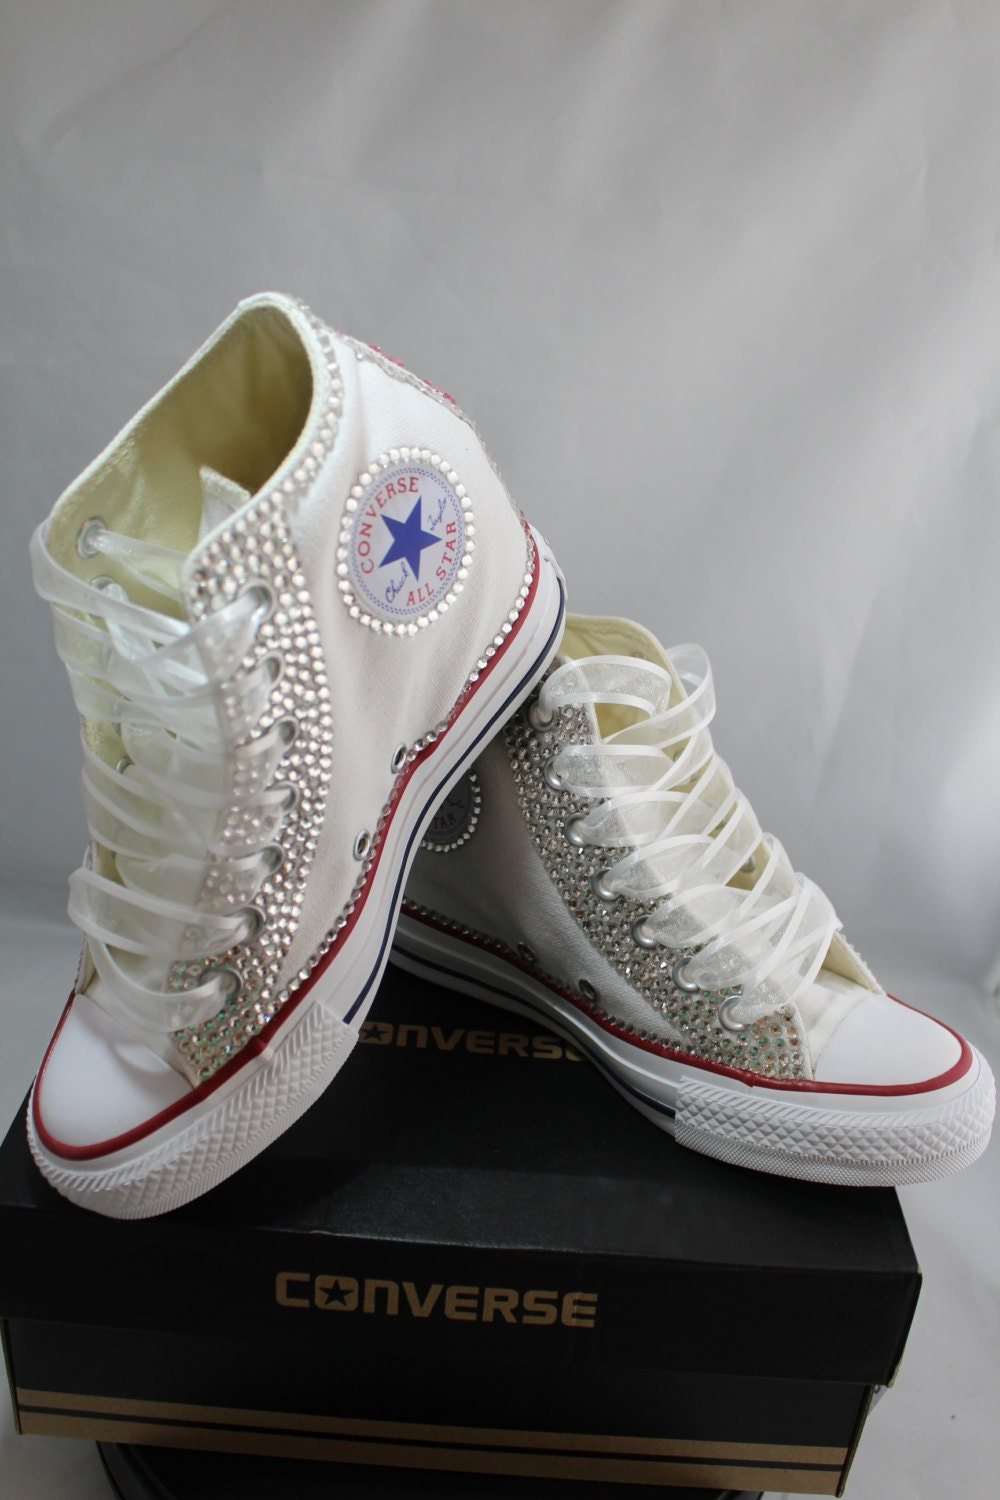 Wedding Converse, Wedding Shoes, Bridal Sneakers, Bling Shoes, Heeled Shoes, Custom Converse, Women's Shoes,Platform Shoes, Wedge Shoes DesignsAfraca out of 5 stars.